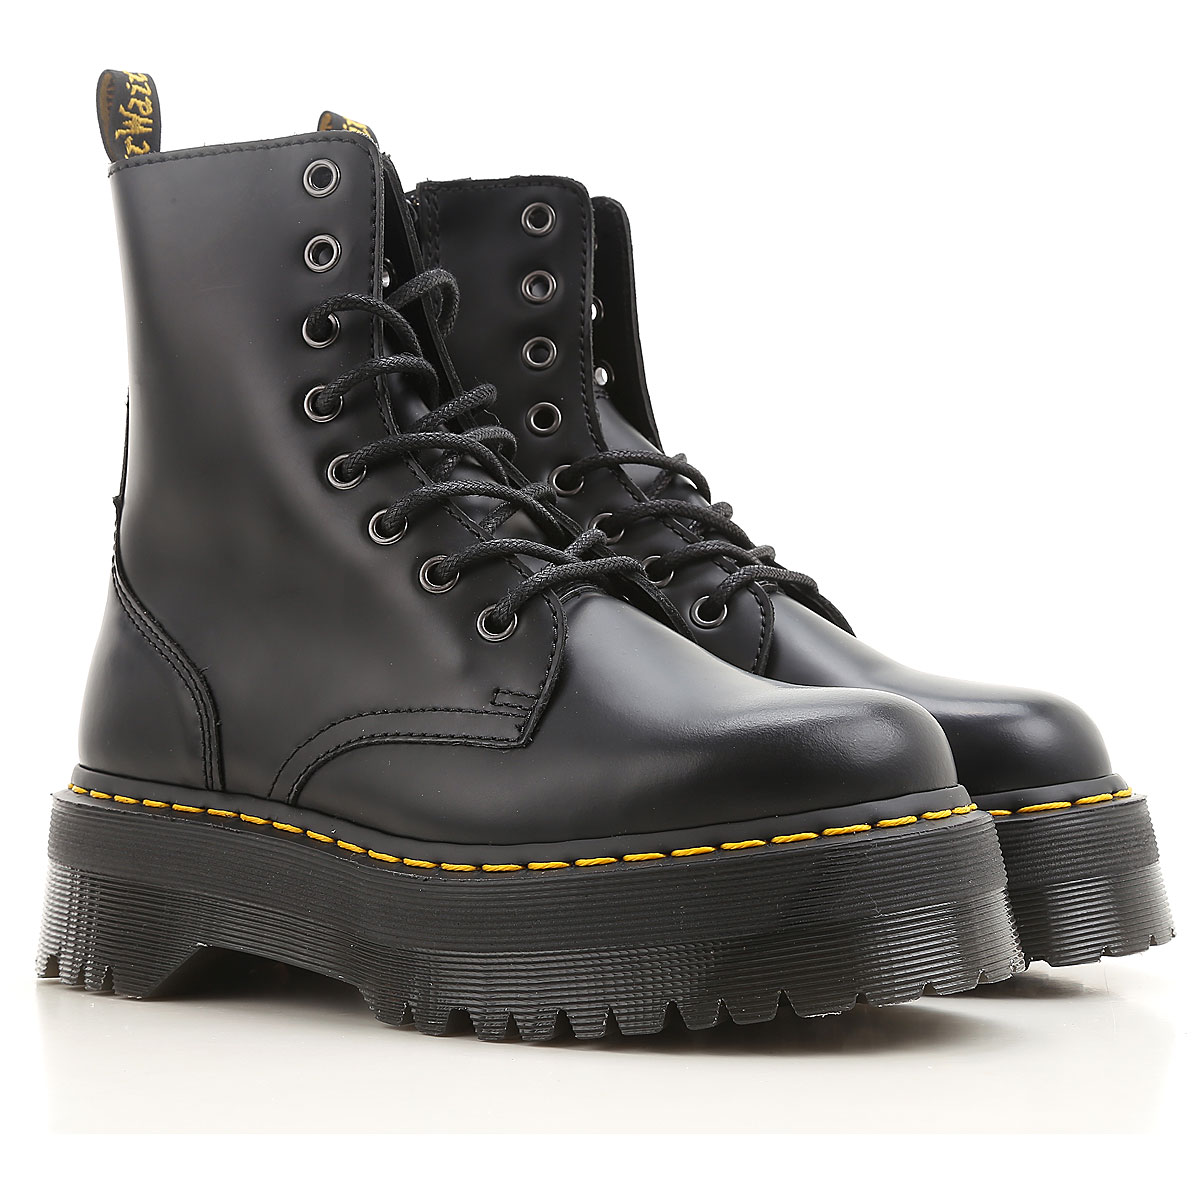 Dr. Martens Boots for Women, Booties, Black, Leather, 2019, 10